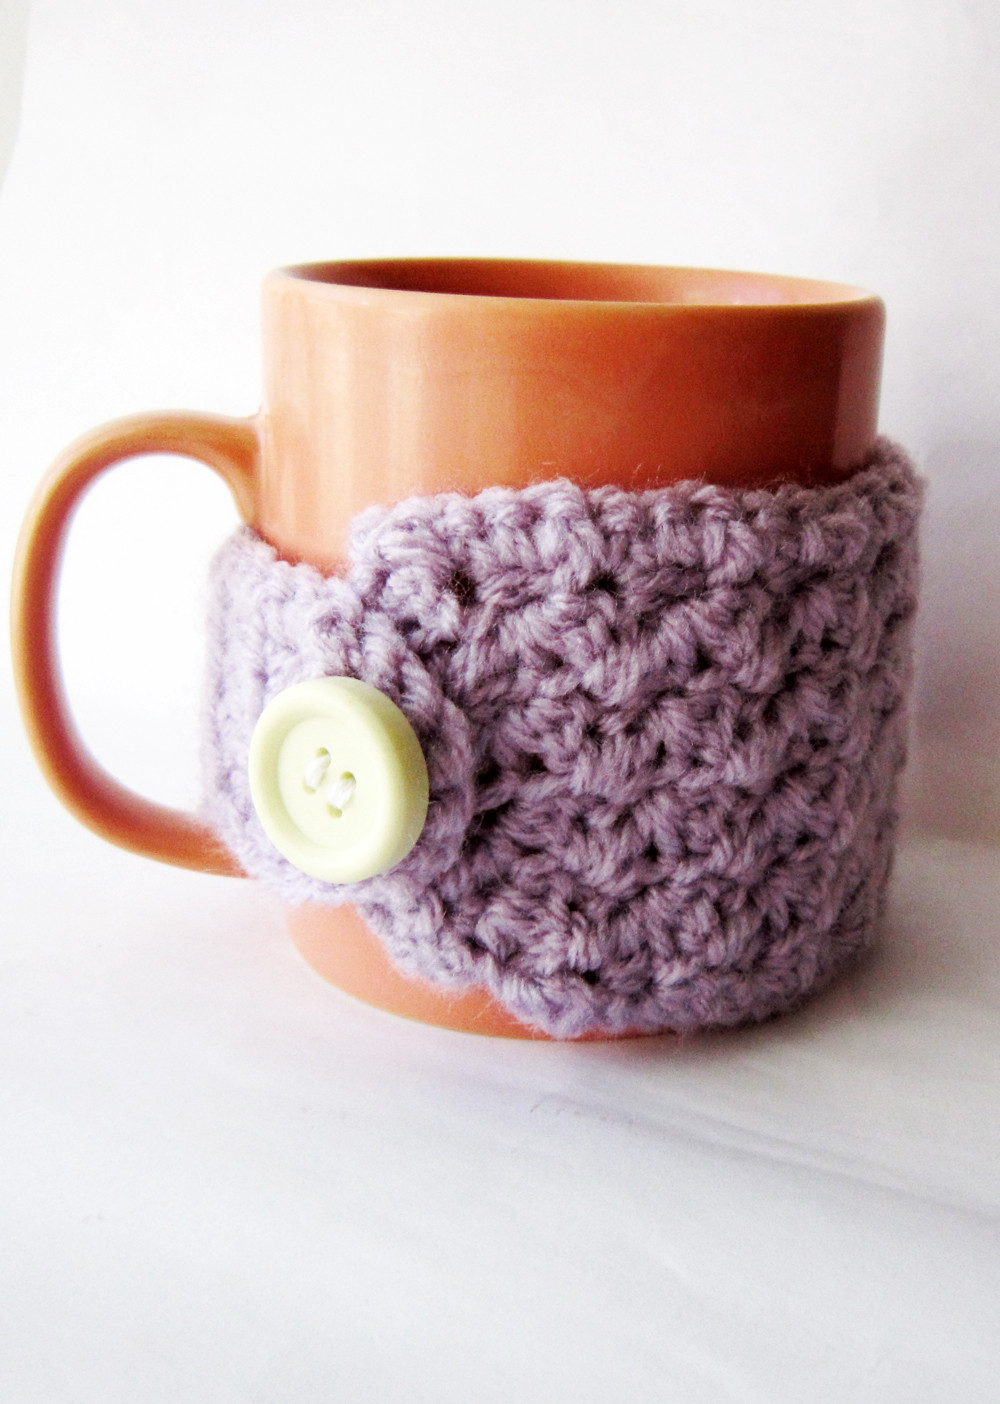 Crochet Coffee Cup Cozy Inspirational Easy Crochet Mug Cozy Free Pattern Akamatra Of Crochet Coffee Cup Cozy Inspirational Crochet Coffee Cup Cozy Pattern Pdf Download Coffee Cup Cozy